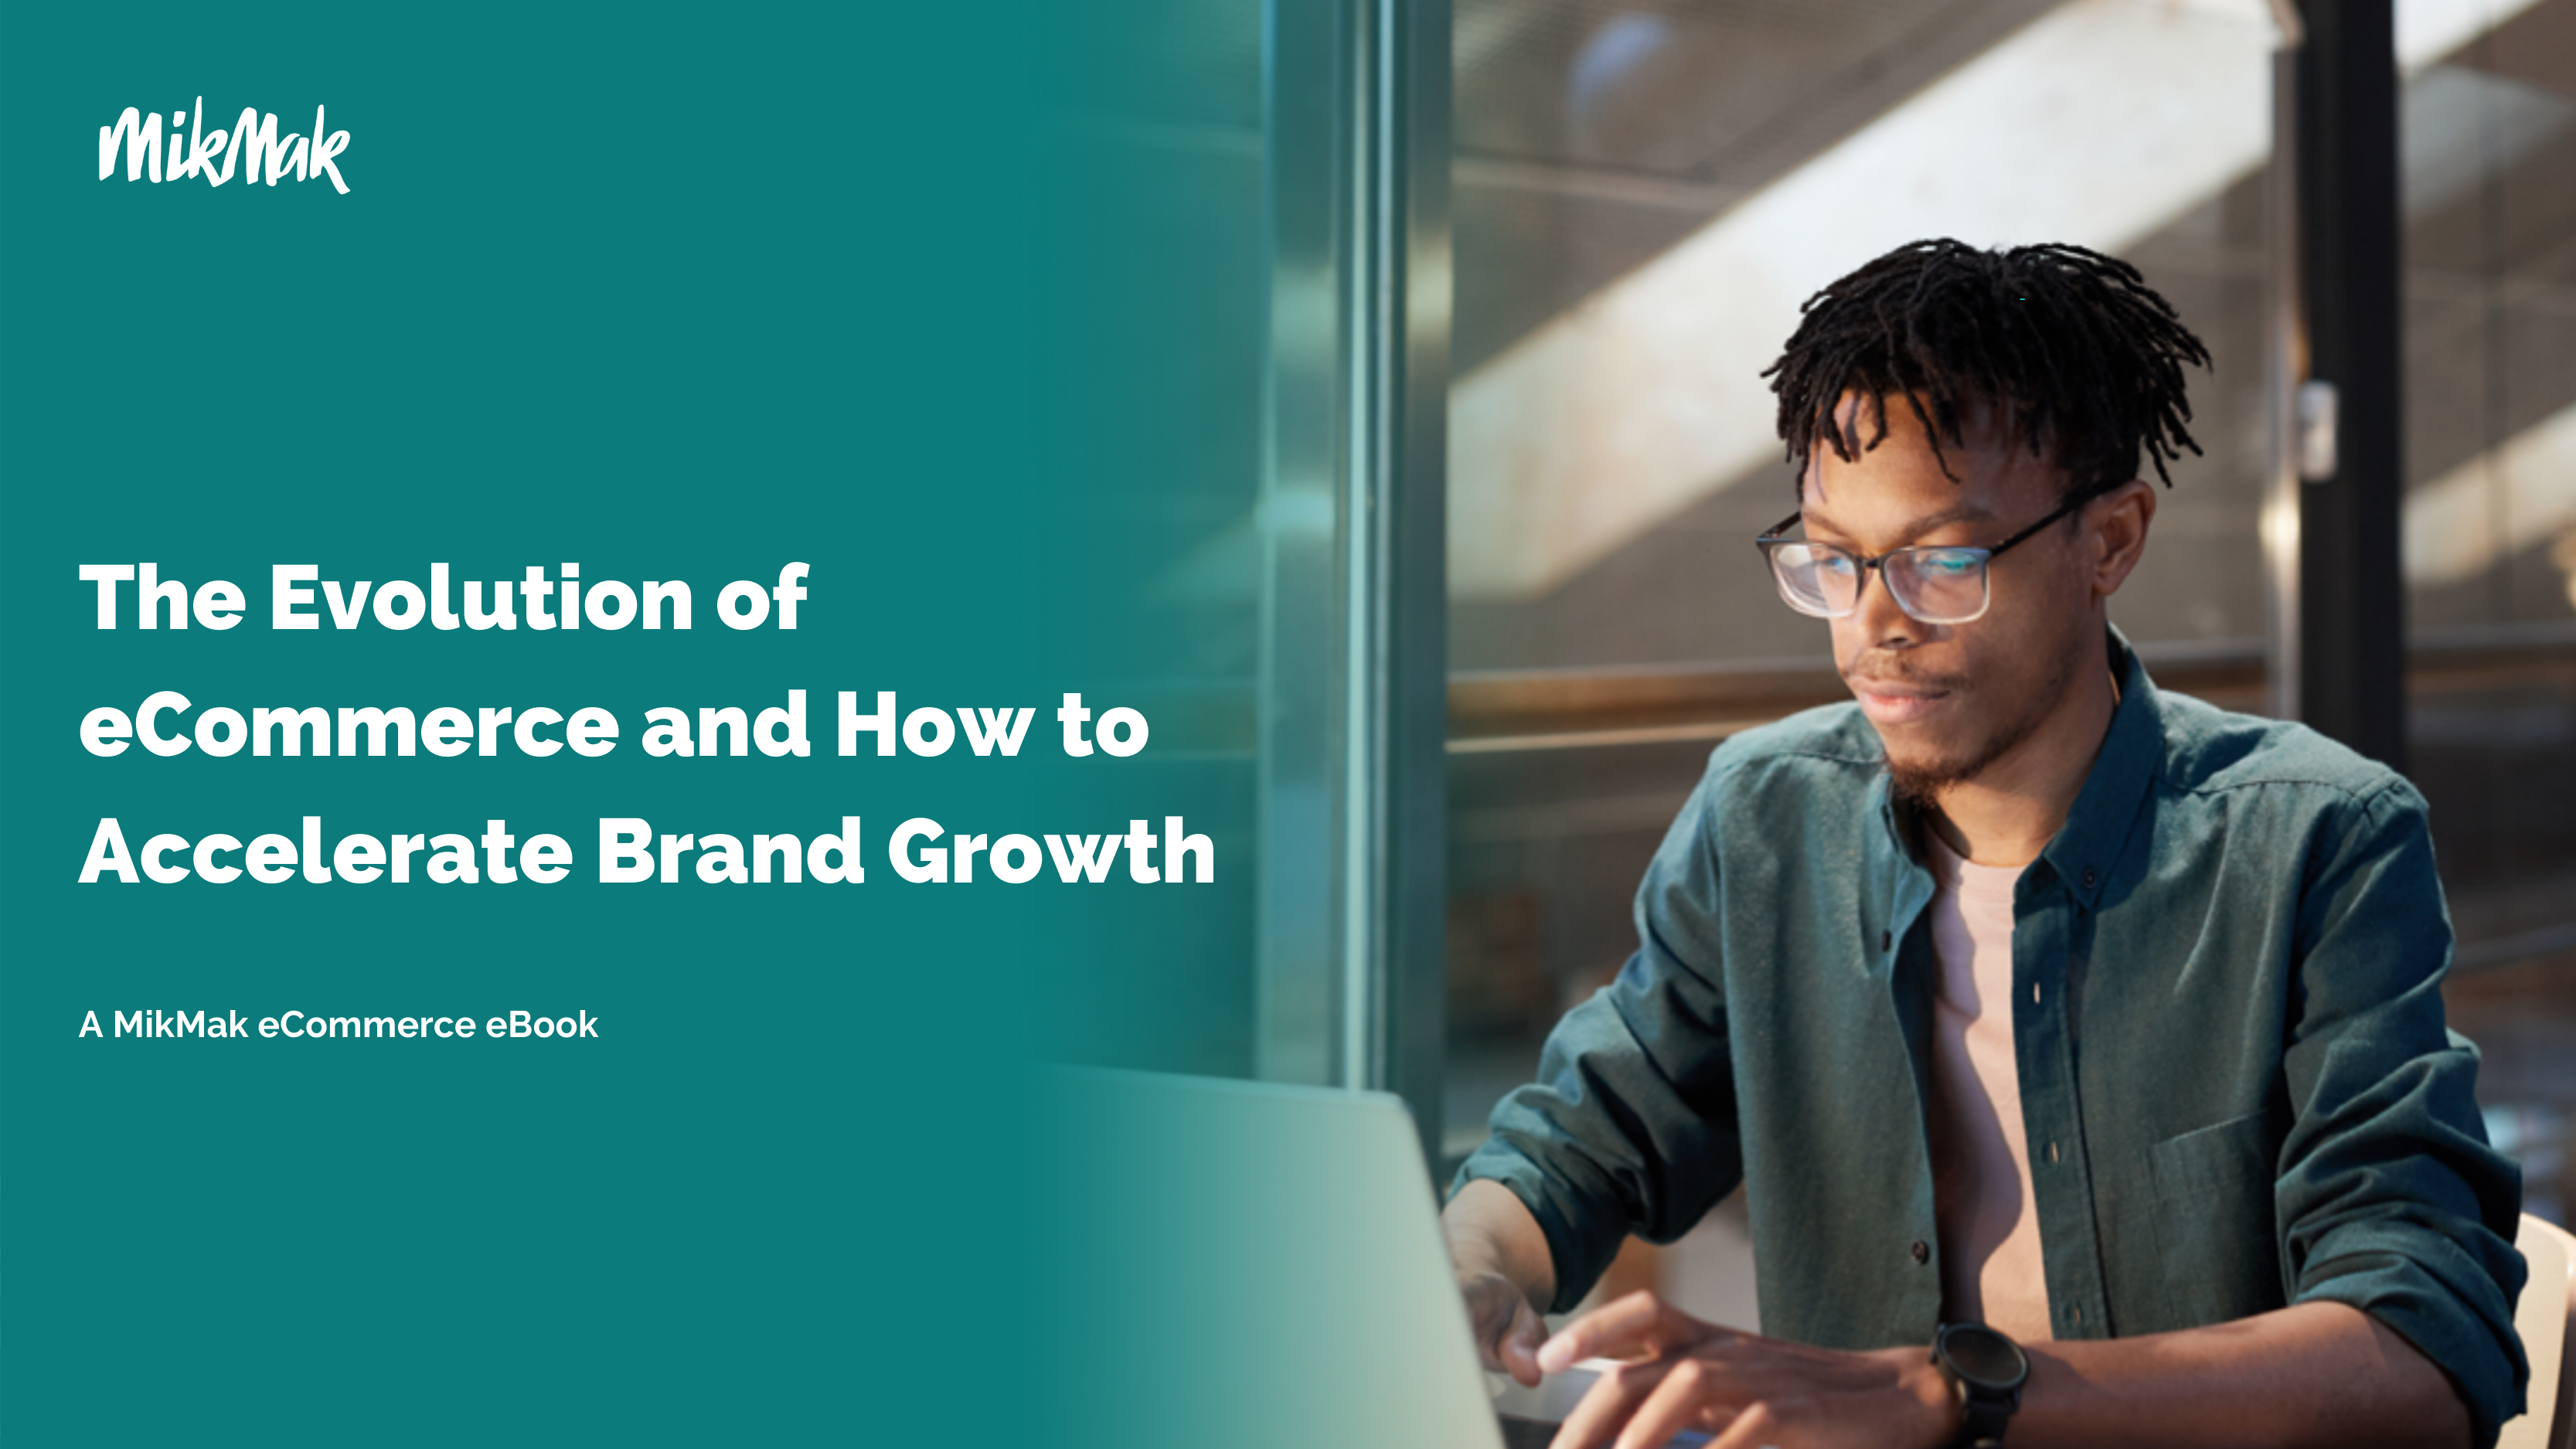 The Evolution of eCommerce and How to Accelerate Brand Growth